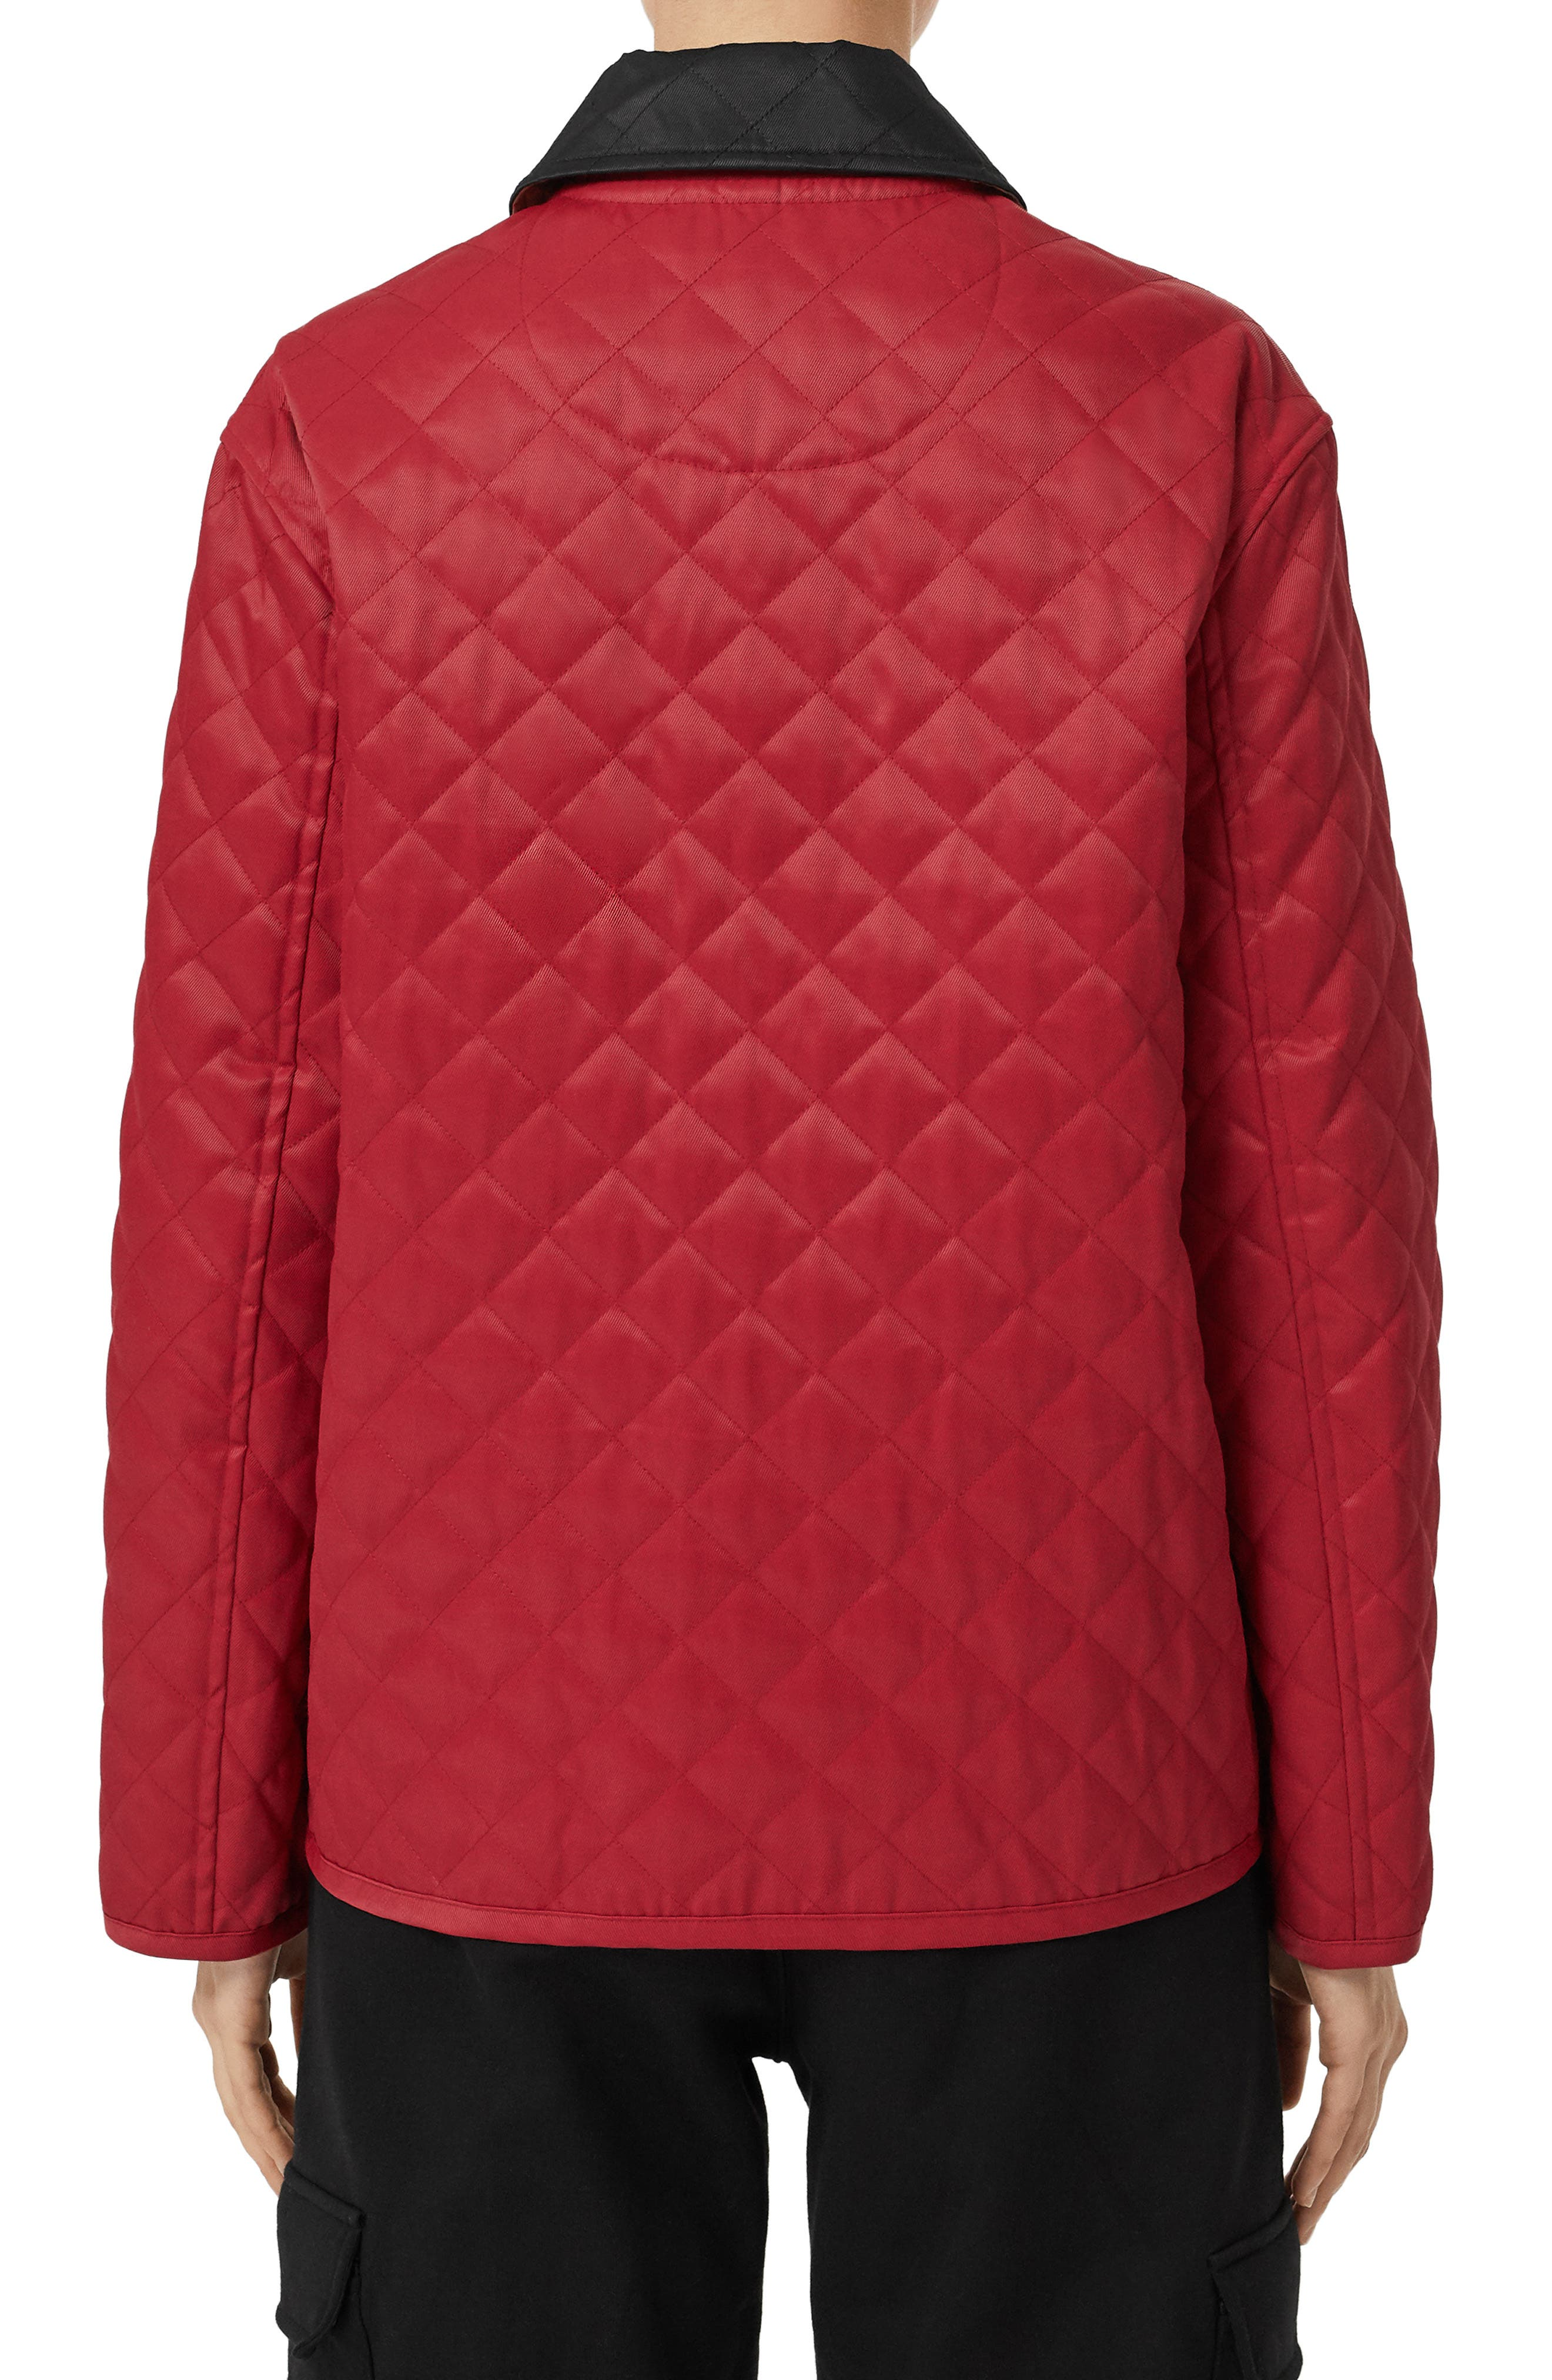 Dranefeld Quilted Jacket,                             Alternate thumbnail 2, color,                             RED